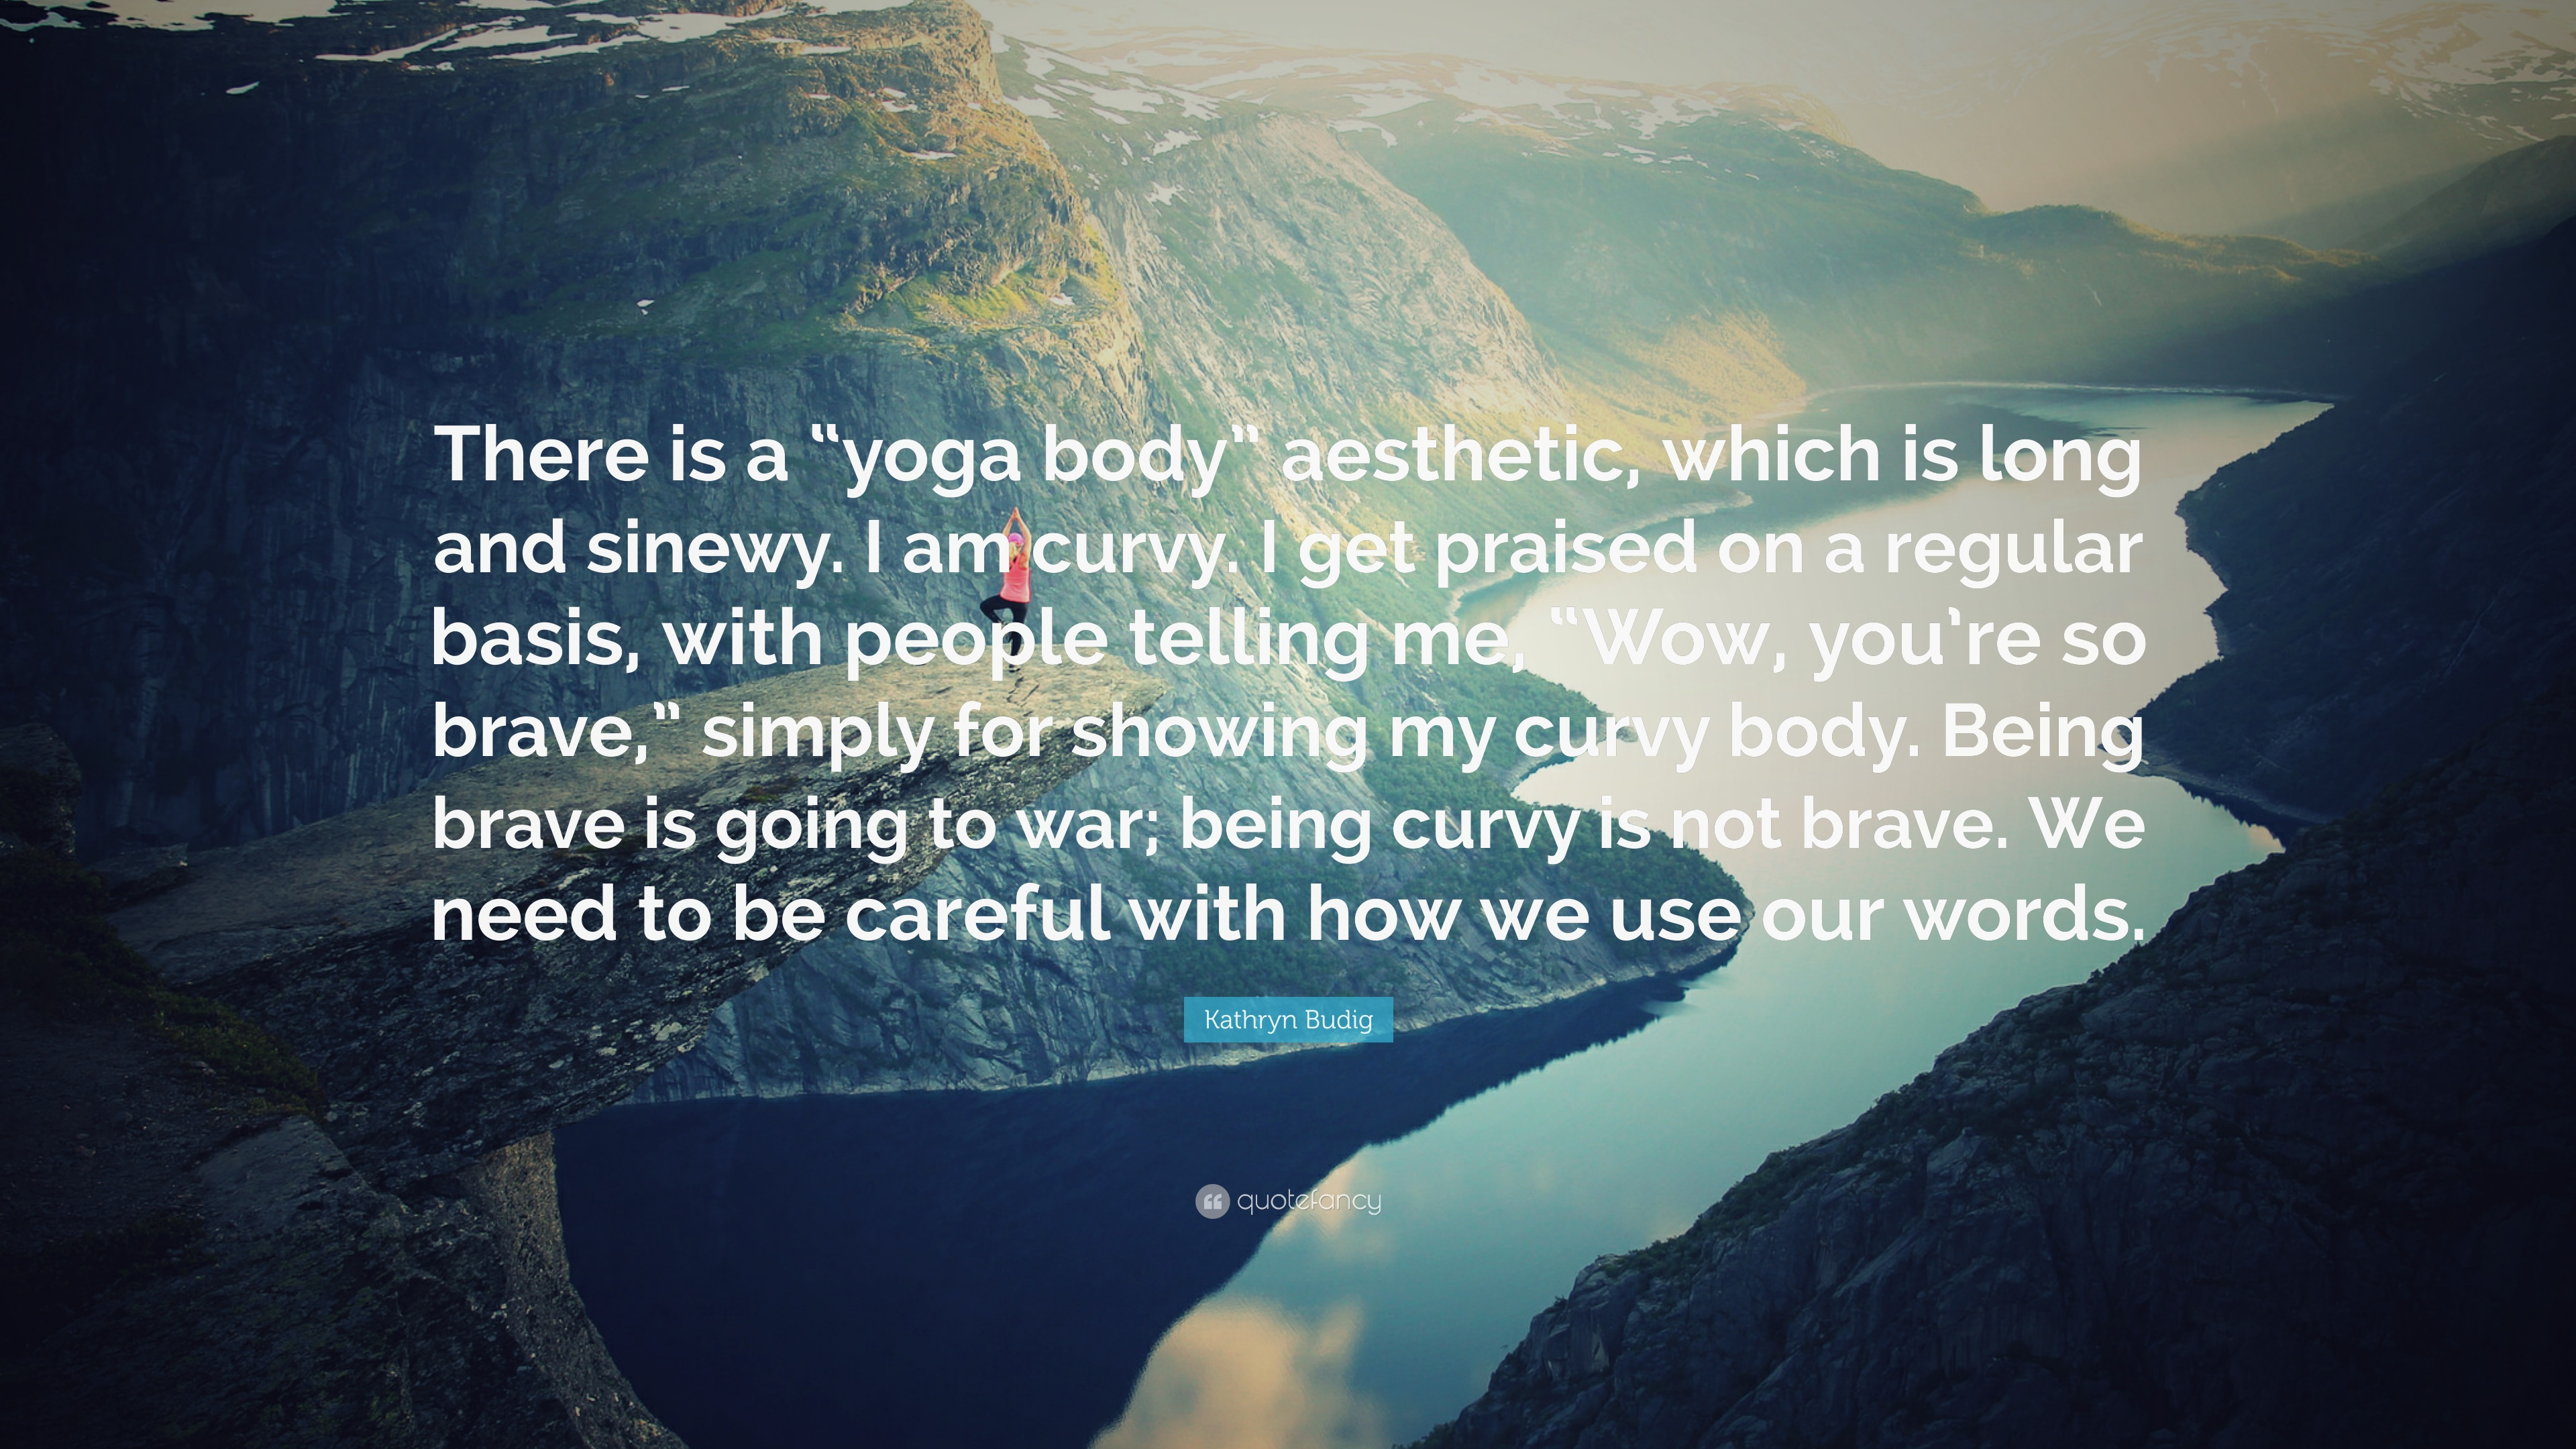 Kathryn Budig Quote There Is A Yoga Body Aesthetic Which Is Long And Sinewy I Am Curvy I Get Praised On A Regular Basis With People Te 7 Wallpapers Quotefancy